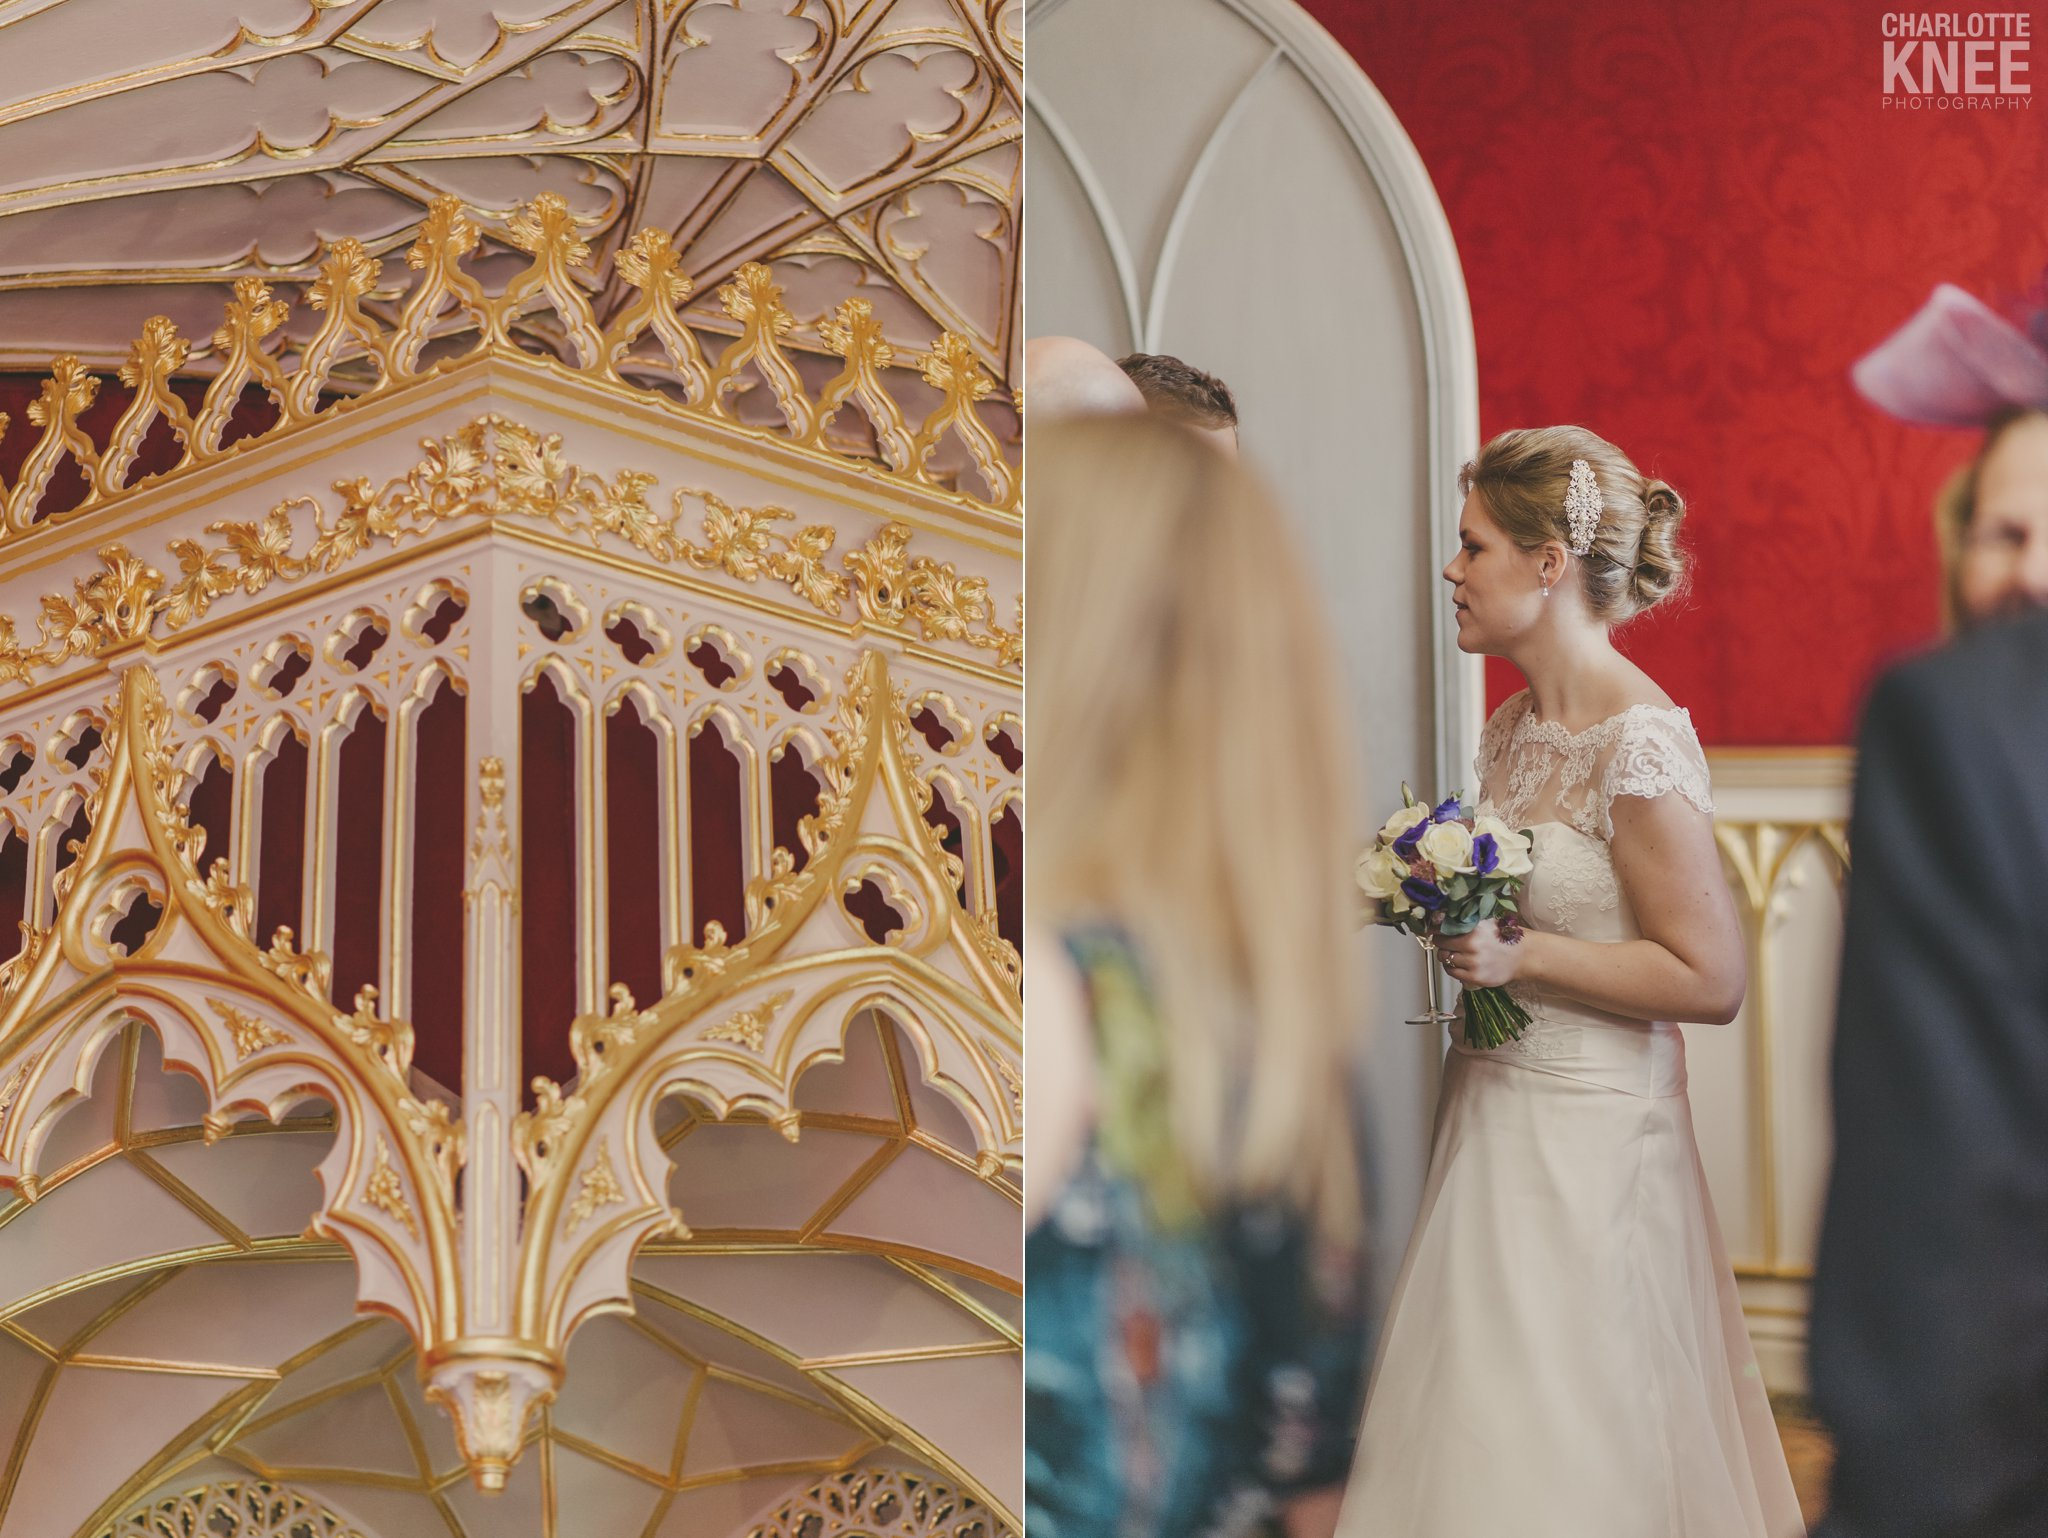 LONDON-WEDDING-PHOTOGRAPHY-STRAWBERRY-HILL-HOUSE-Charlotte-Knee-Photography_0070.jpg